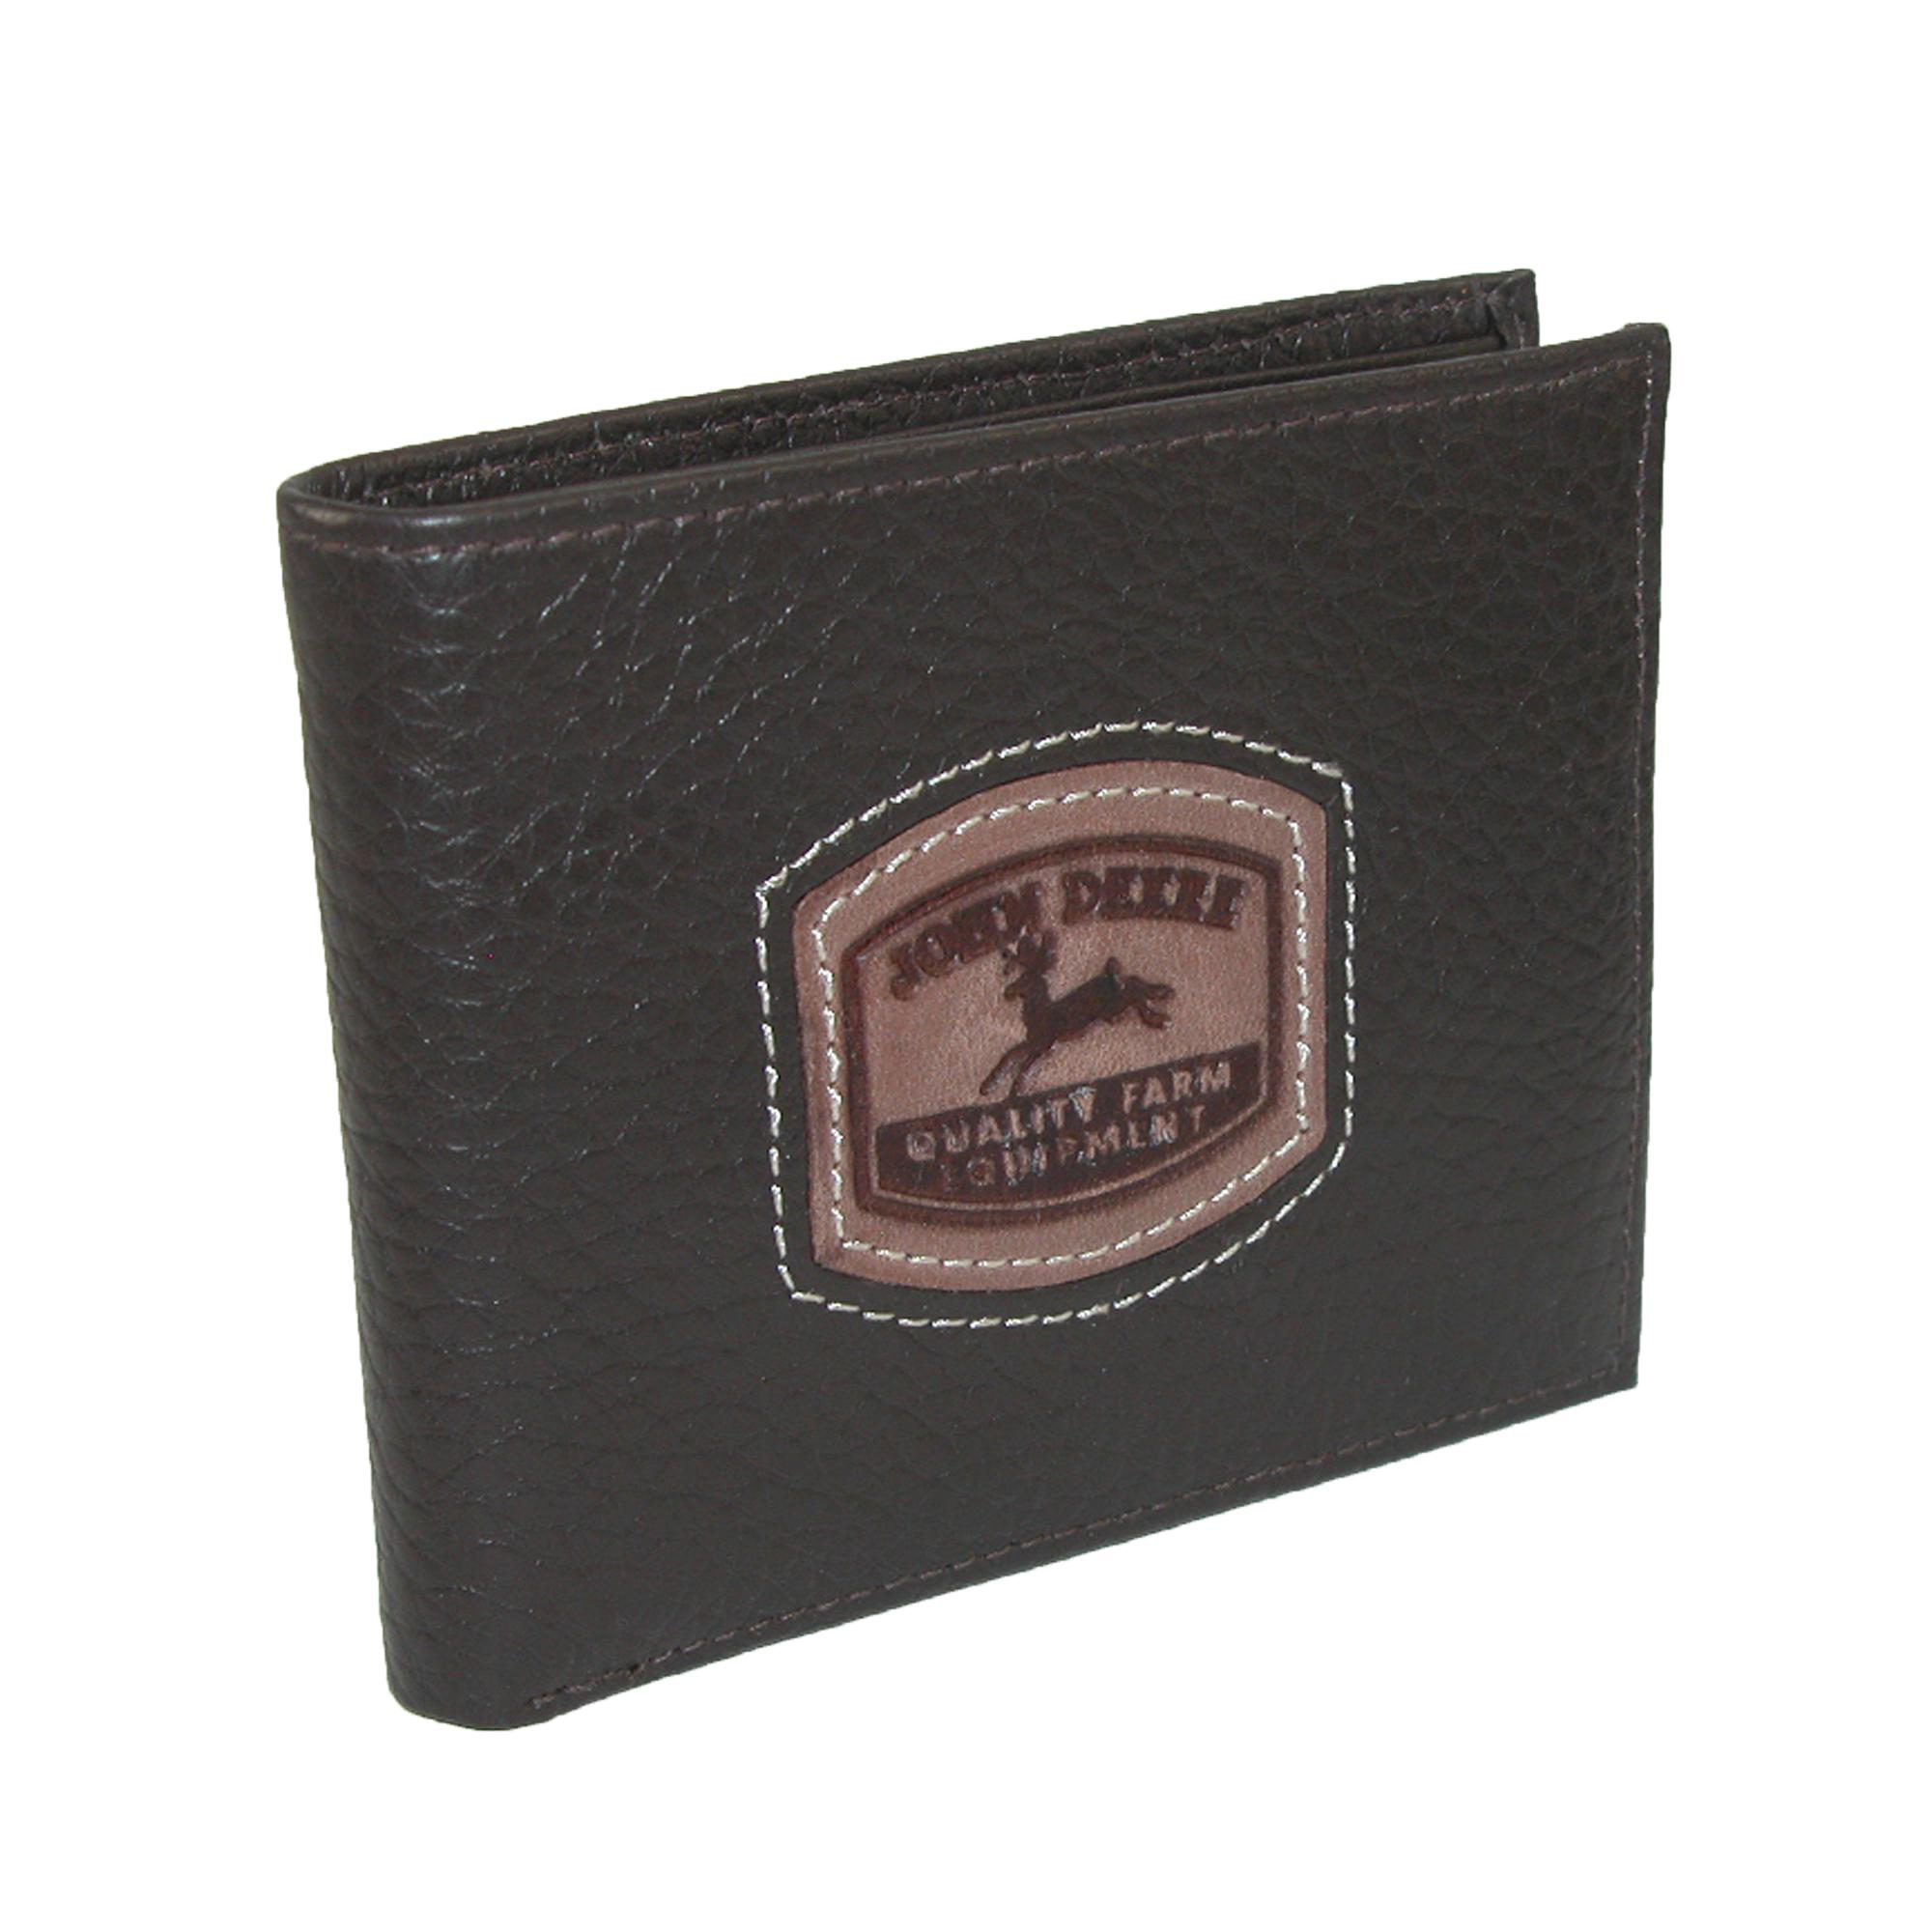 John Deere Men's Leather Passcase Billfold Wallet With Embossed Patch